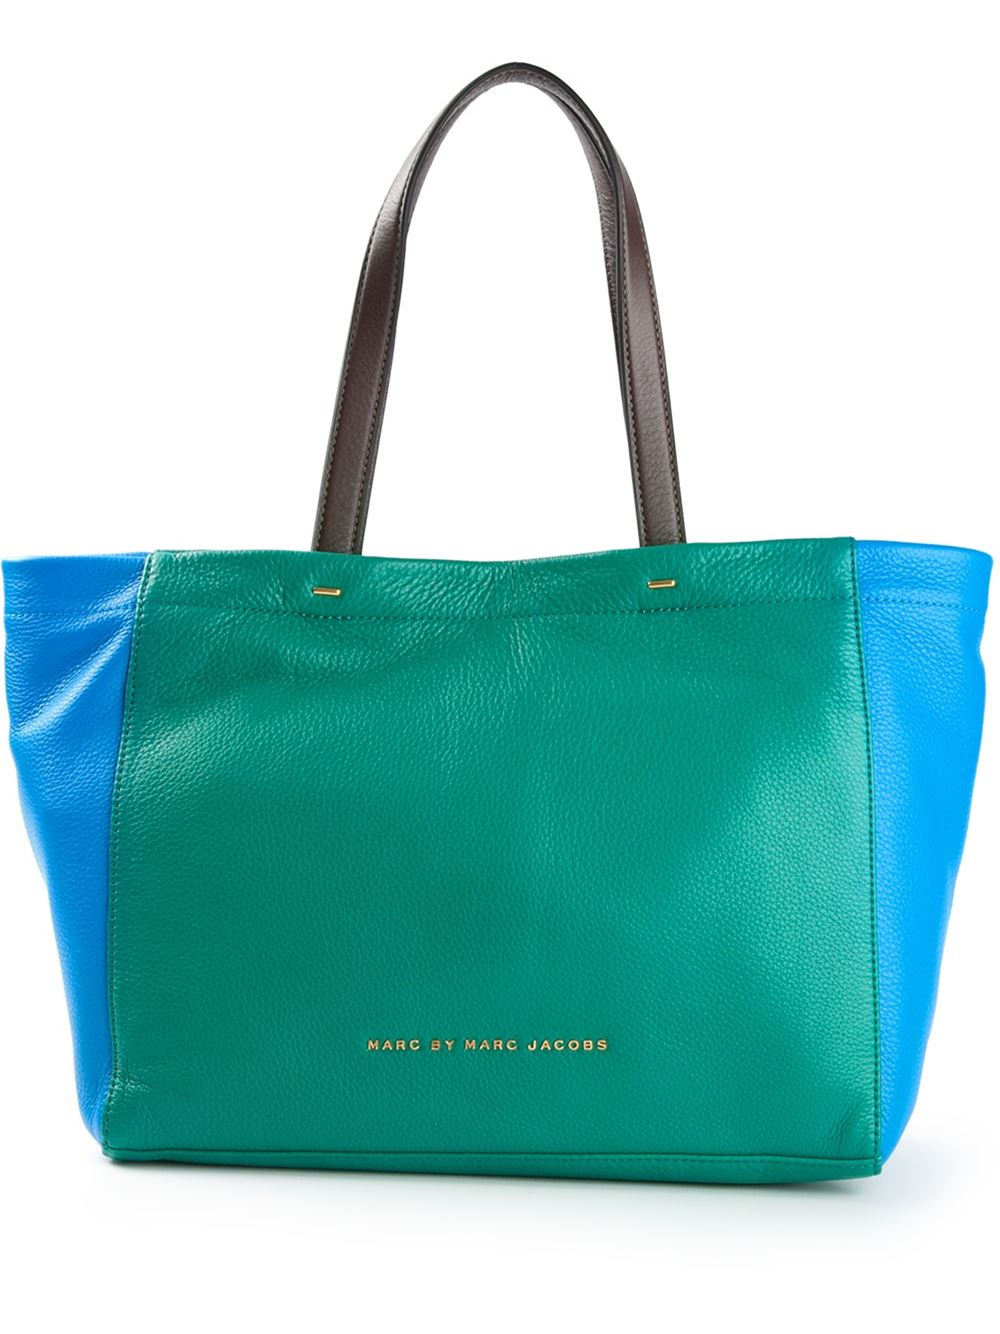 Marc by marc jacobs Whats The T Tote in Green | Lyst